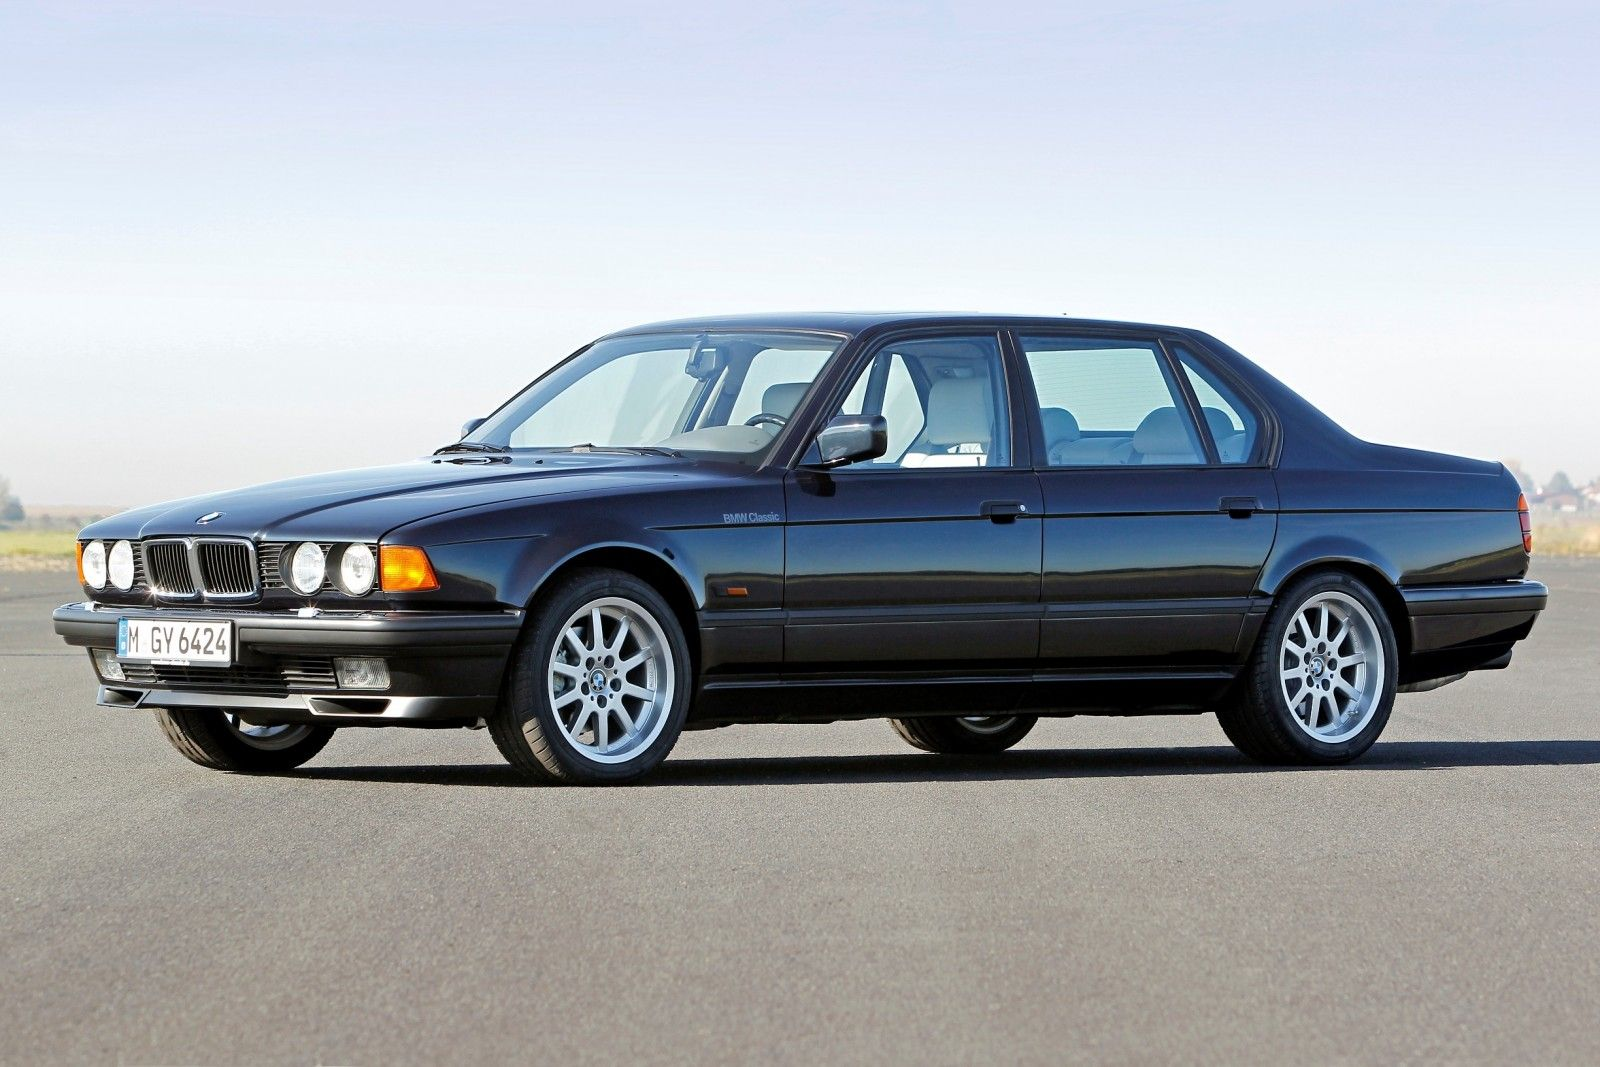 Bmw v12 turns 25 celebrating the evolution of the v12 bmw 7 series